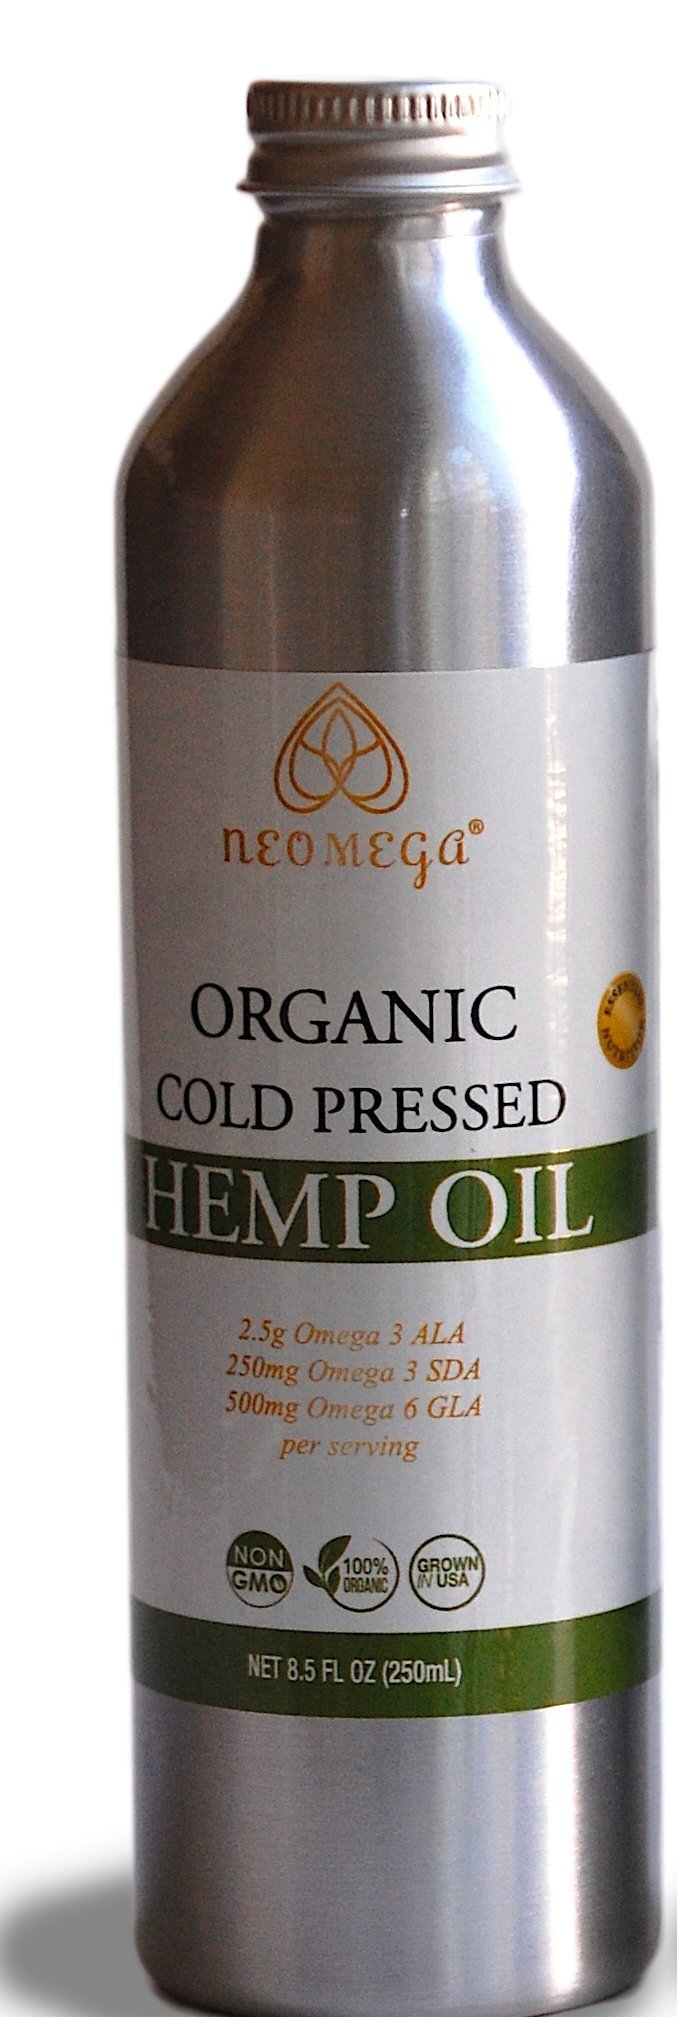 NEOMEGA Organic Hemp Oil Virgin, Cold-Pressed, 100% Pure: No Fillers or Additives, Therapeutic Grade, Product of the USA (8 fl oz)